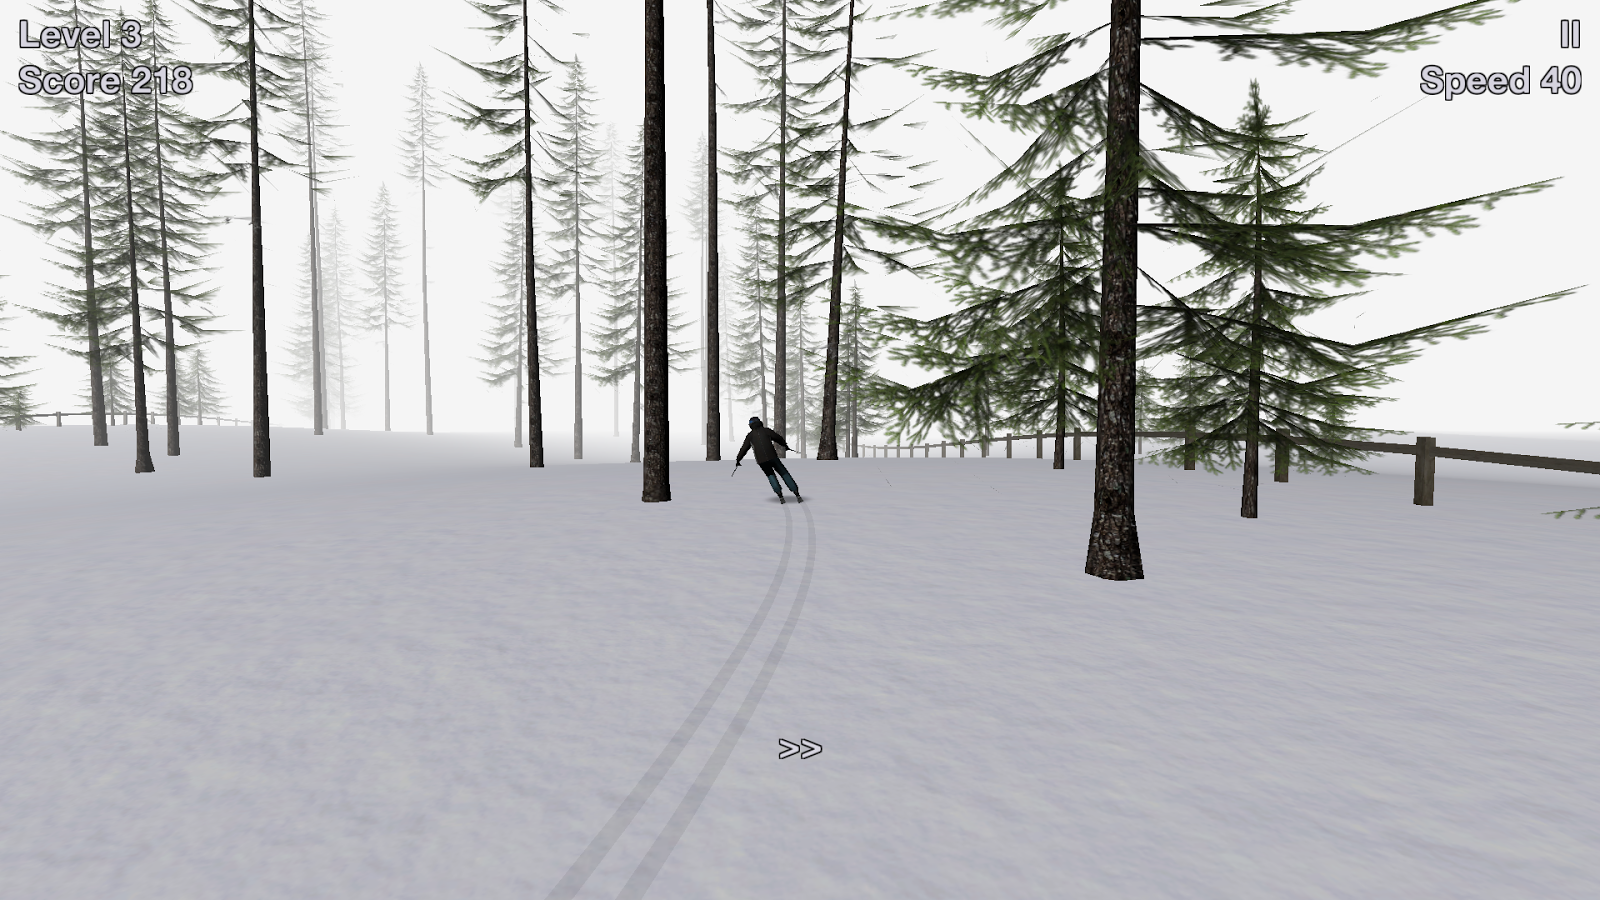 Alpine Ski III- screenshot